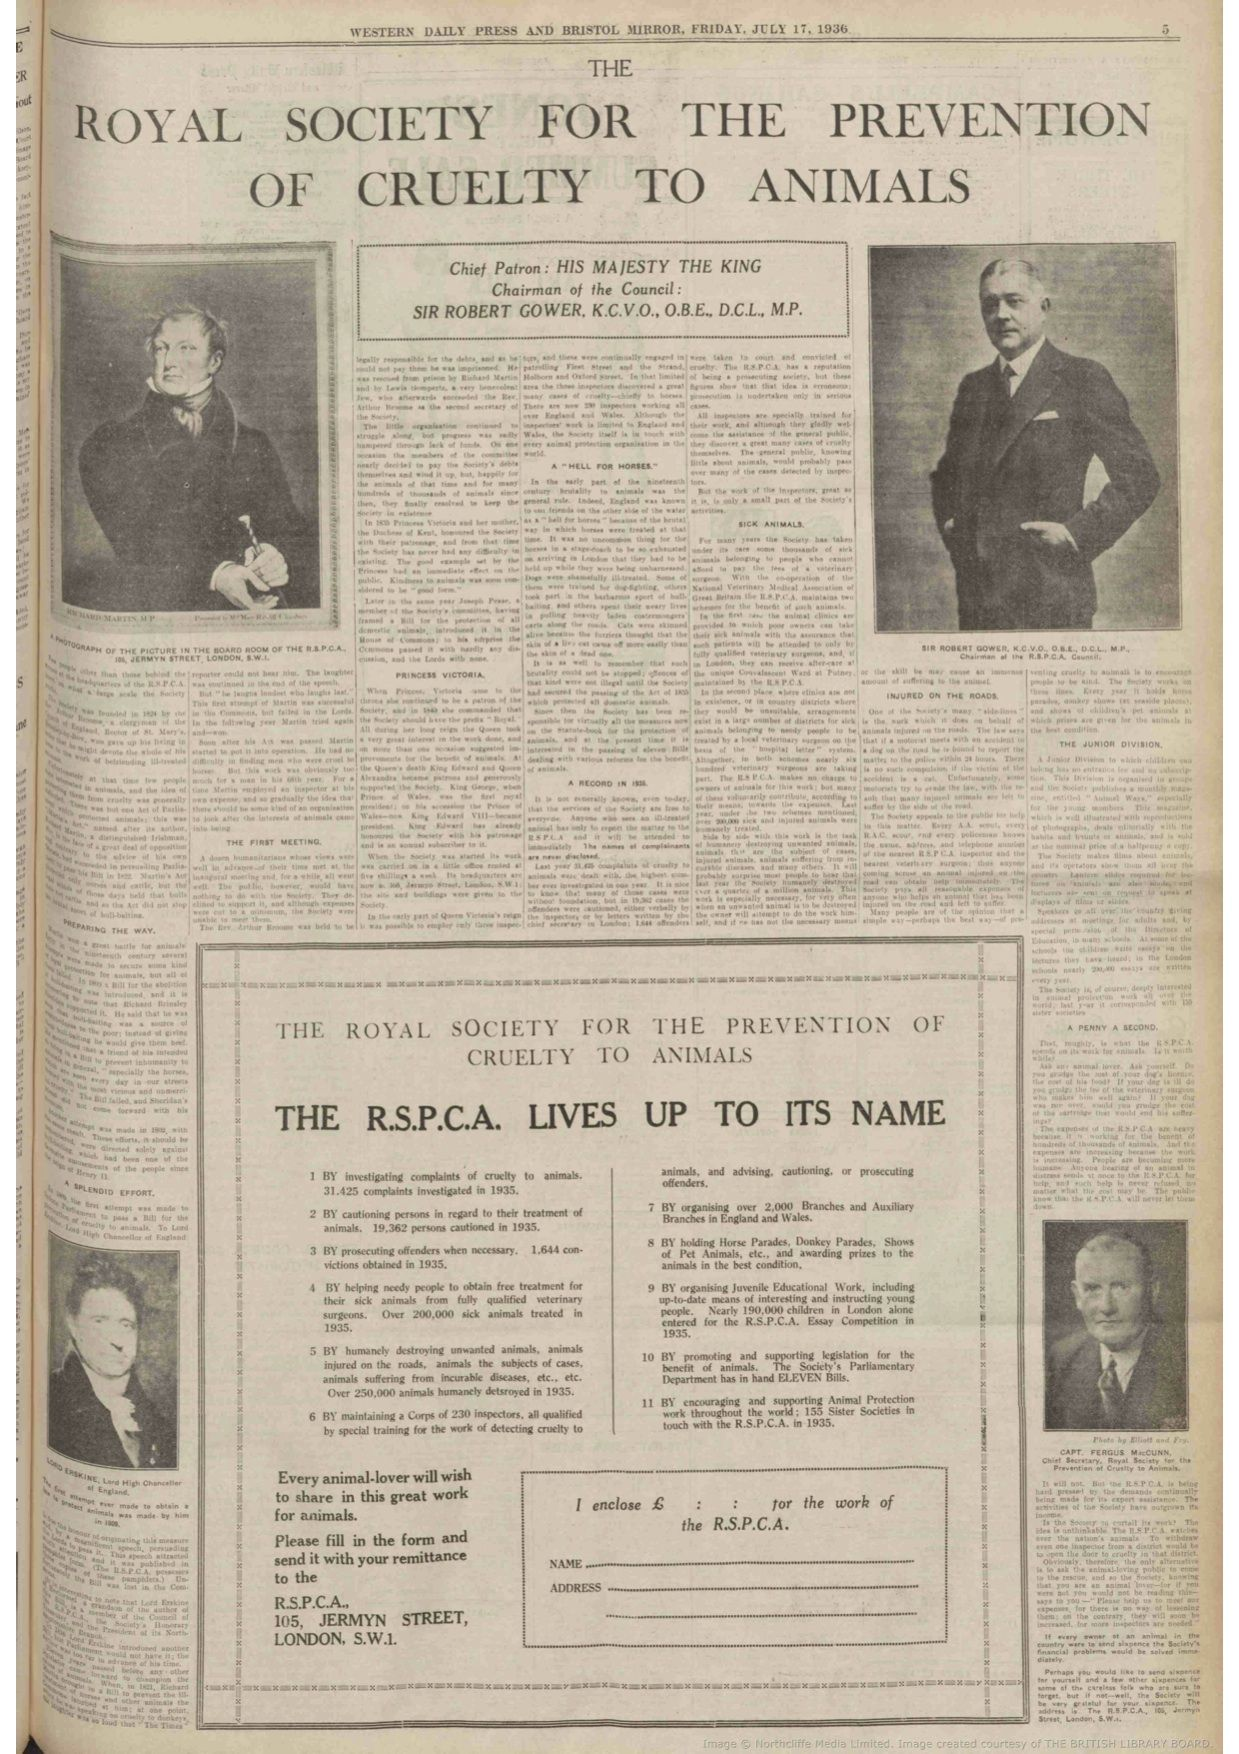 Rspca Advert 17 July 1936 At That Time The Society Was Evidently Promoting No Fewer Than Eleven Parliamentary Bills T Historical People About Me Blog Society